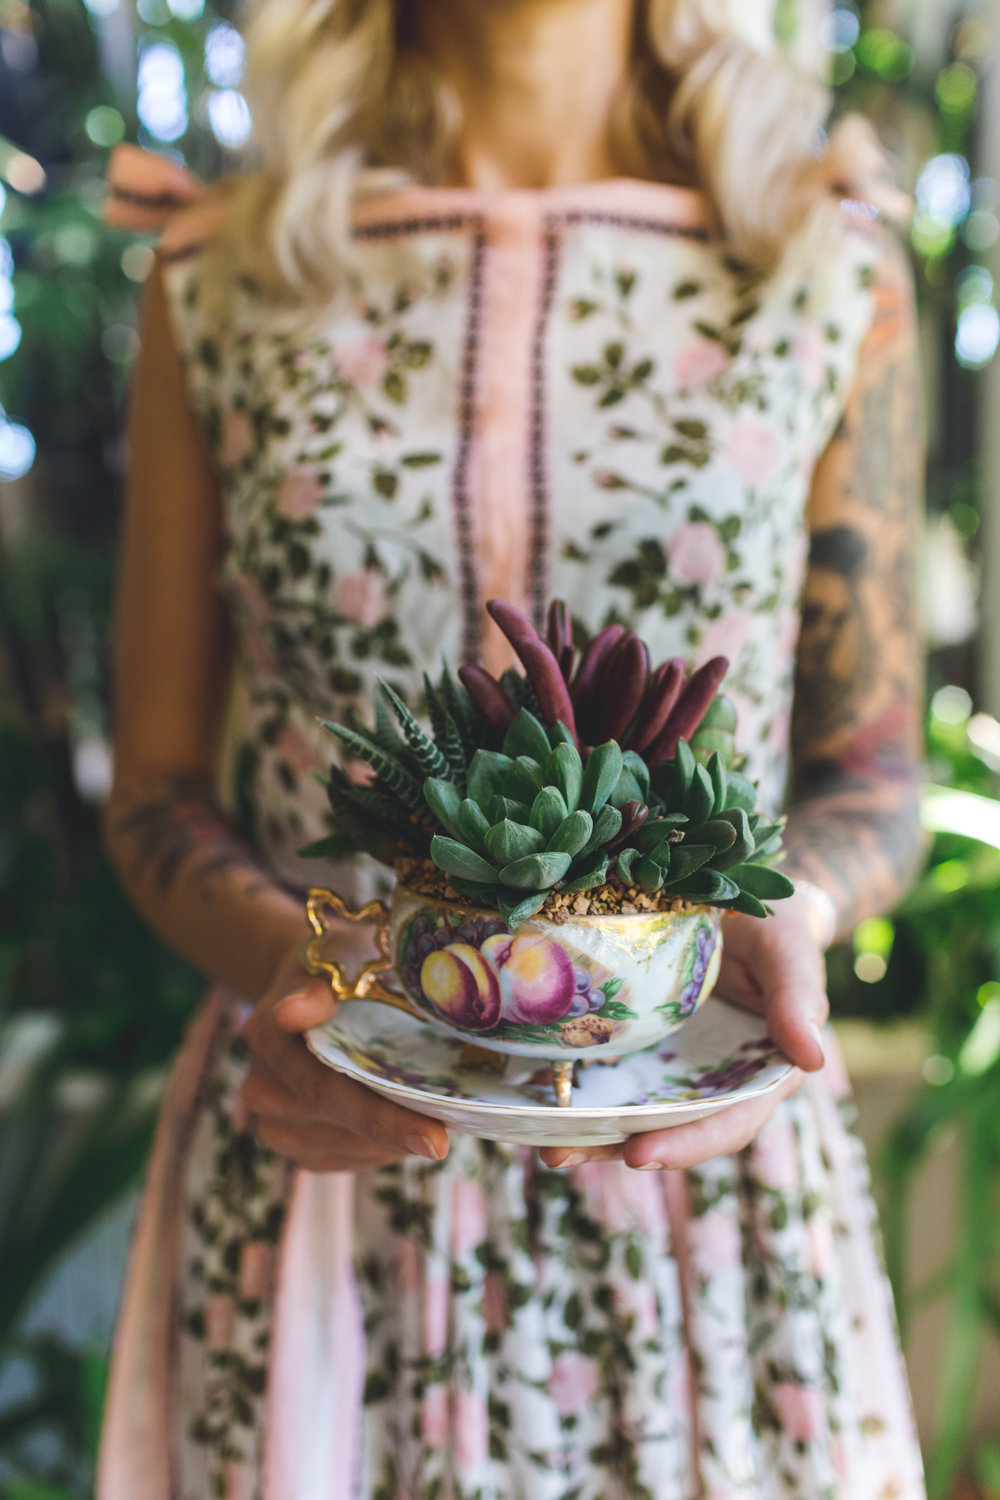 Madison Binder showing off a tea cup succulent arrangement by o'berry's succulents. Photography by Bridge + Bloom.